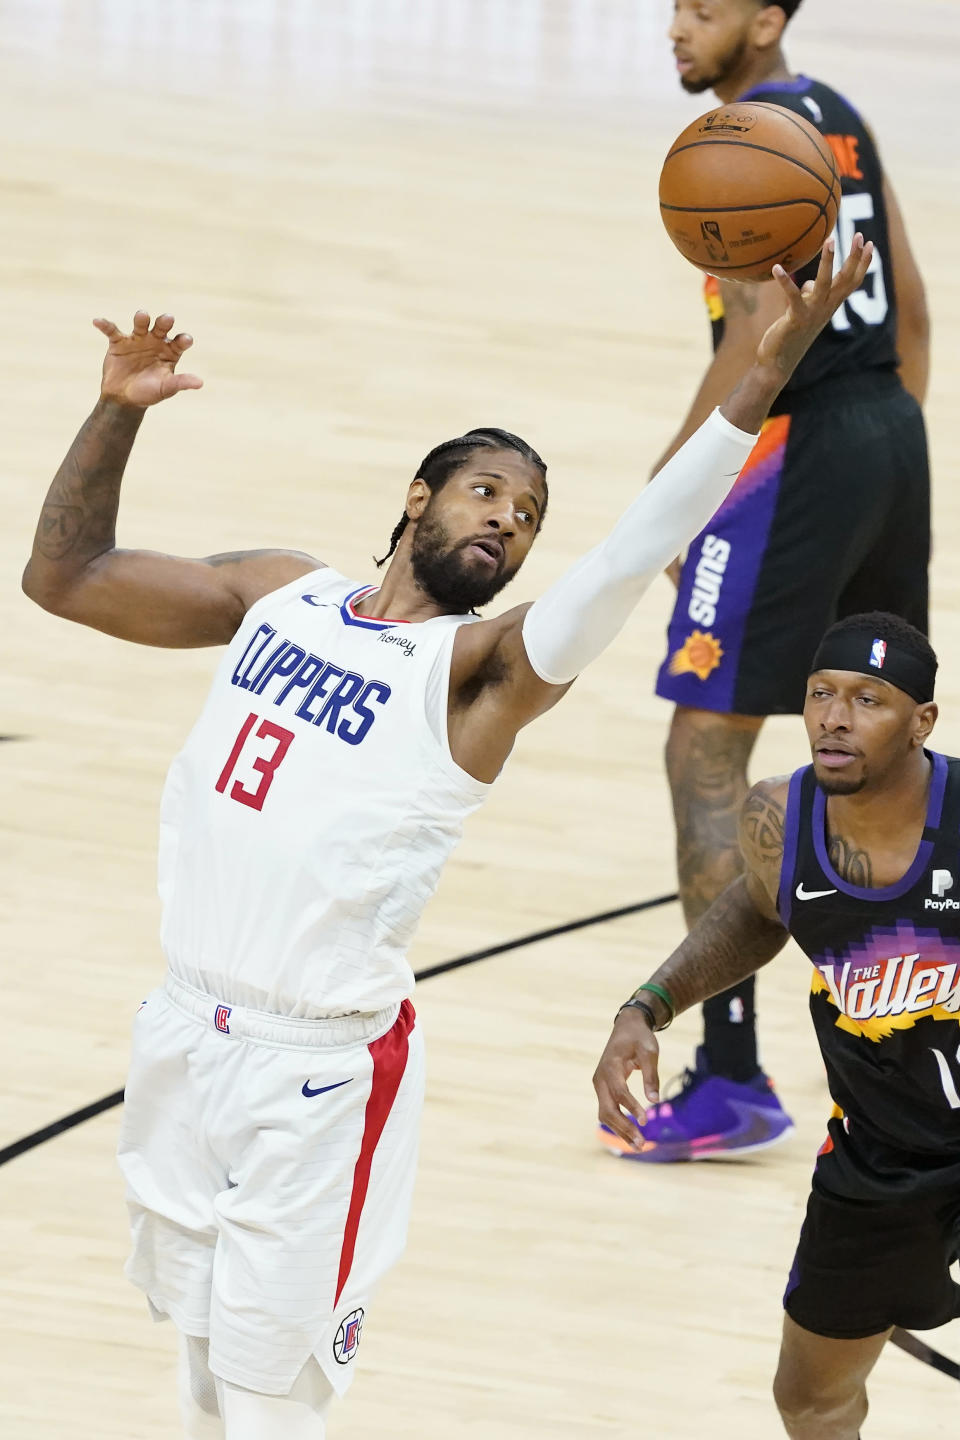 Los Angeles Clippers guard Paul George (13) is defended by Phoenix Suns forward Torrey Craig during the second half of Game 2 of the NBA basketball Western Conference Finals, Tuesday, June 22, 2021, in Phoenix. (AP Photo/Matt York)